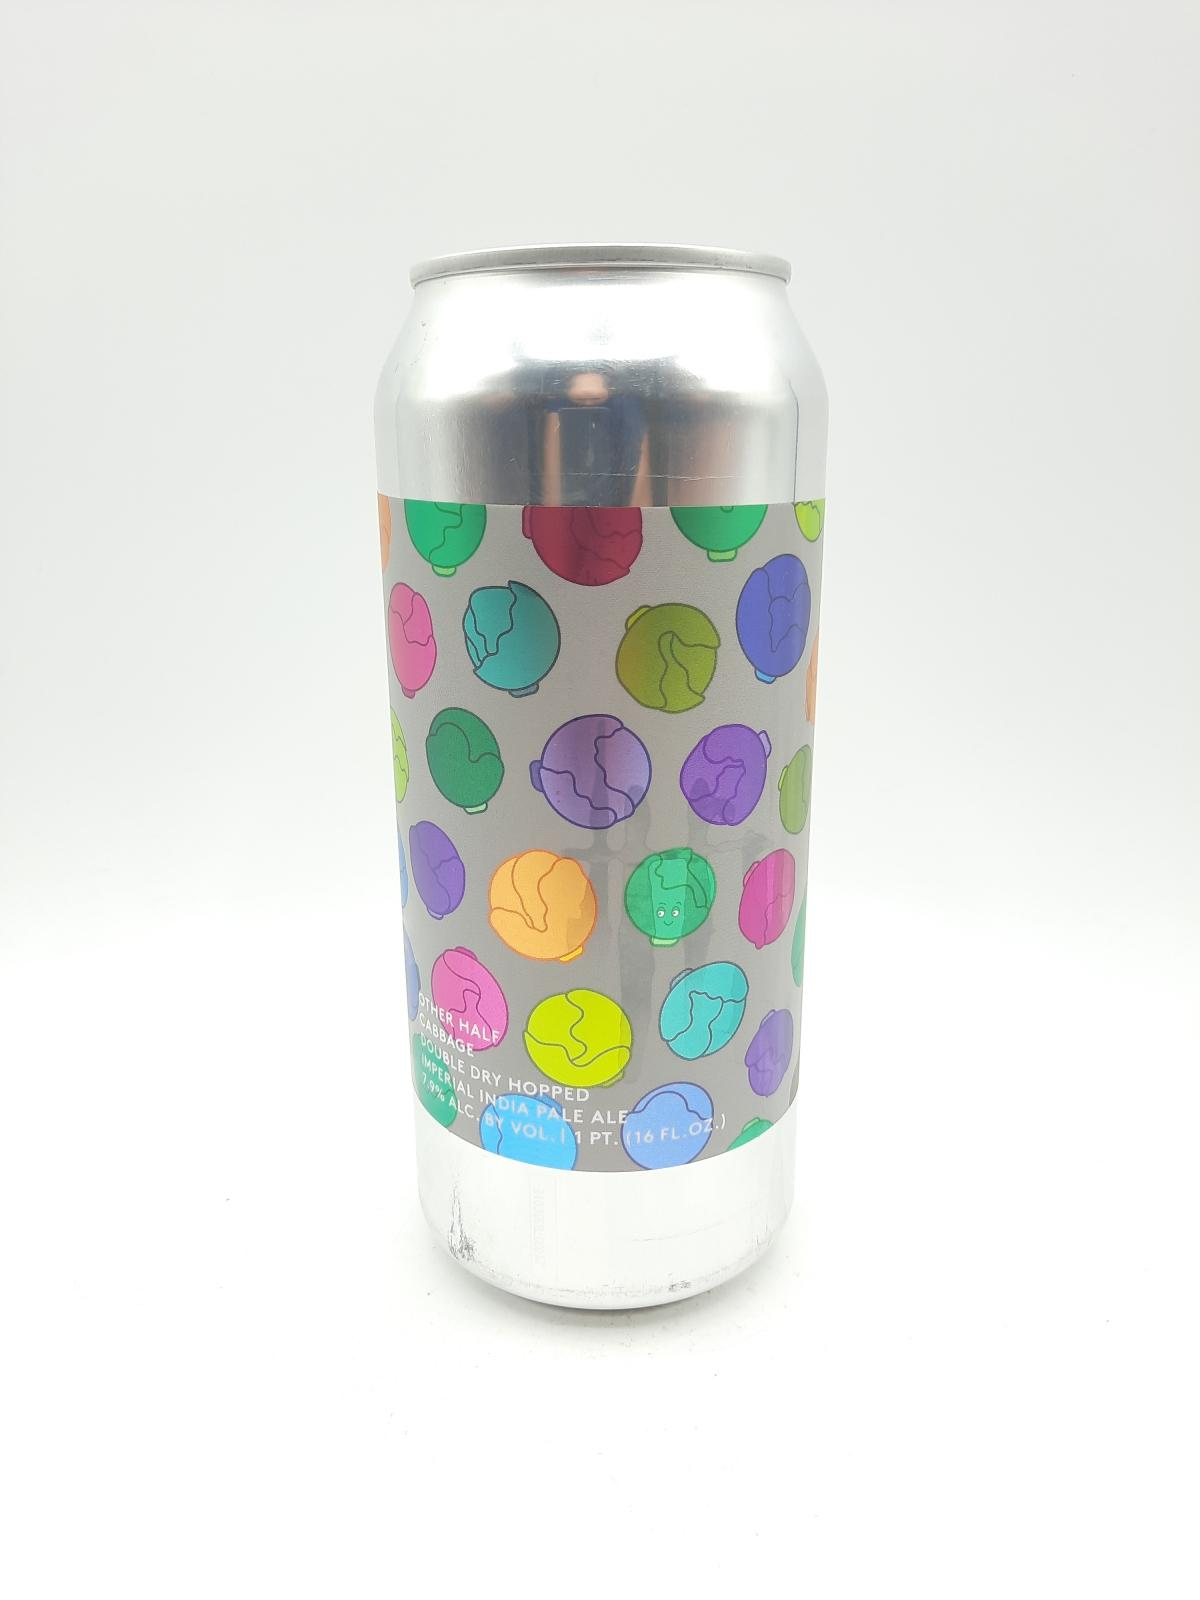 Image Other Half DDH Cabbage